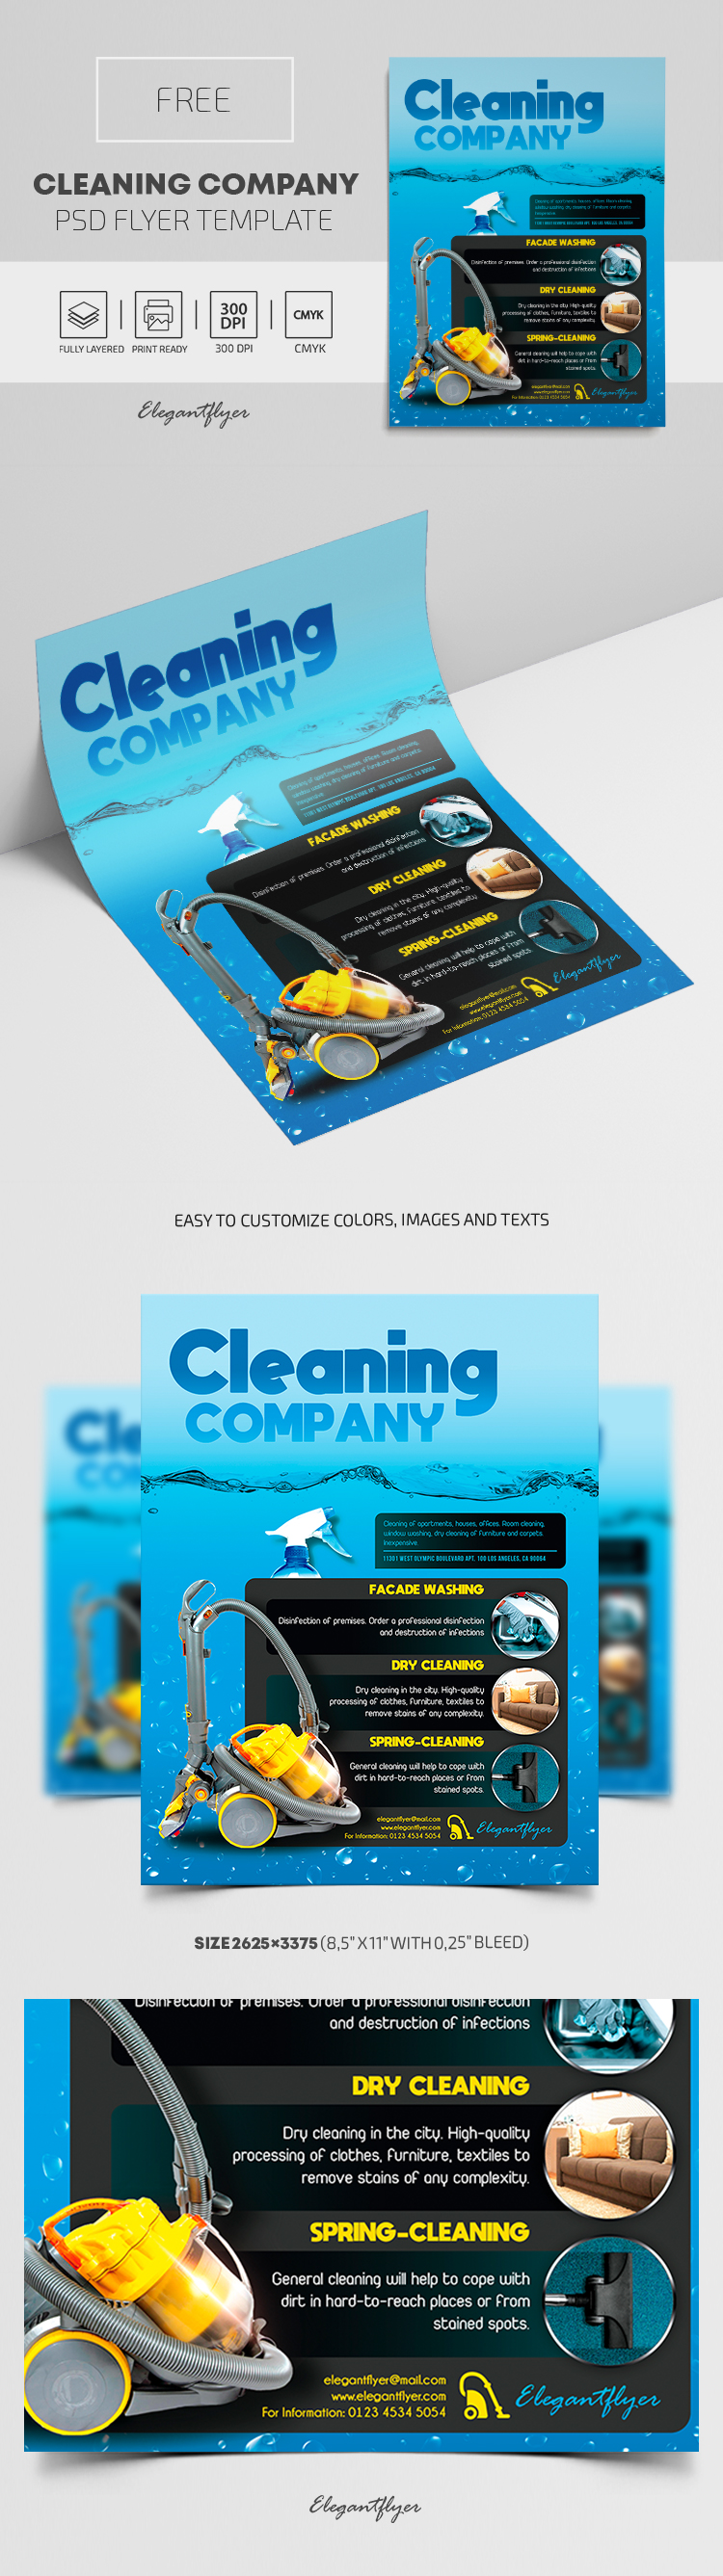 Cleaning Company – Free PSD Flyer Template